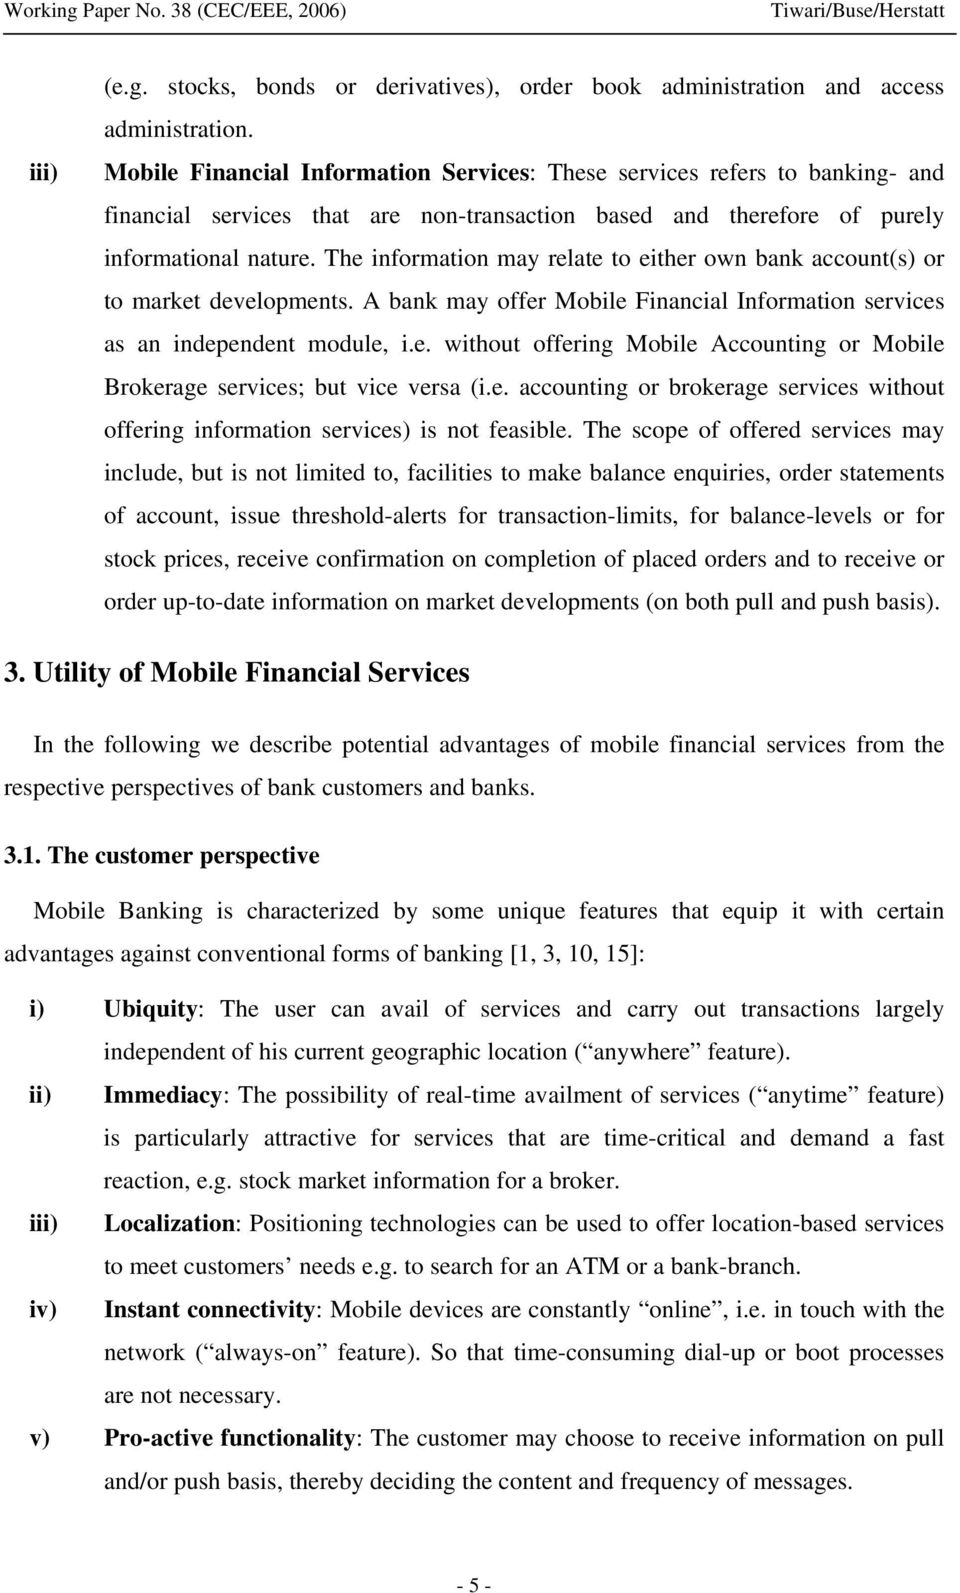 The information may relate to either own bank account(s) or to market developments. A bank may offer Mobile Financial Information services as an independent module, i.e. without offering Mobile Accounting or Mobile Brokerage services; but vice versa (i.